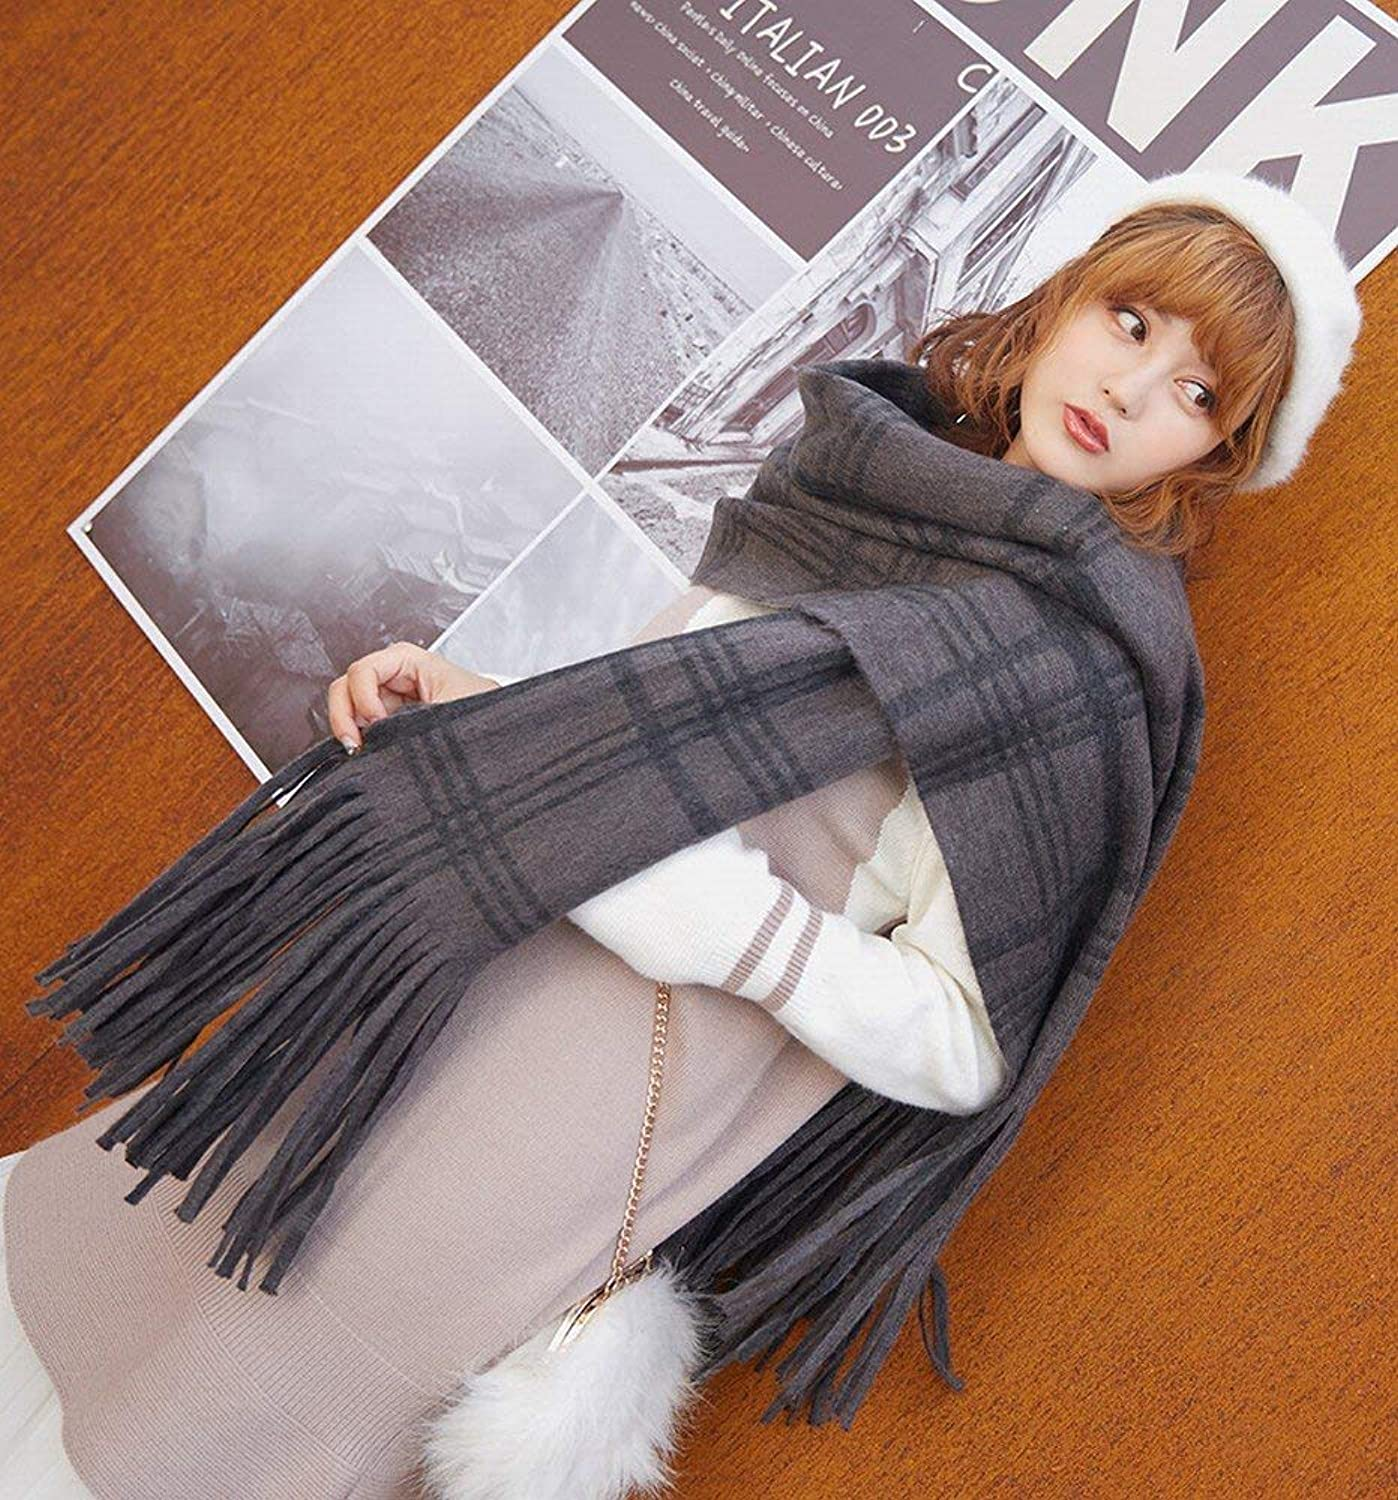 Juexianggou Scarf Female Autumn d Winter Wild Thick Long Fringed Students Shawl Students DualUse Lightweight Women Scarf